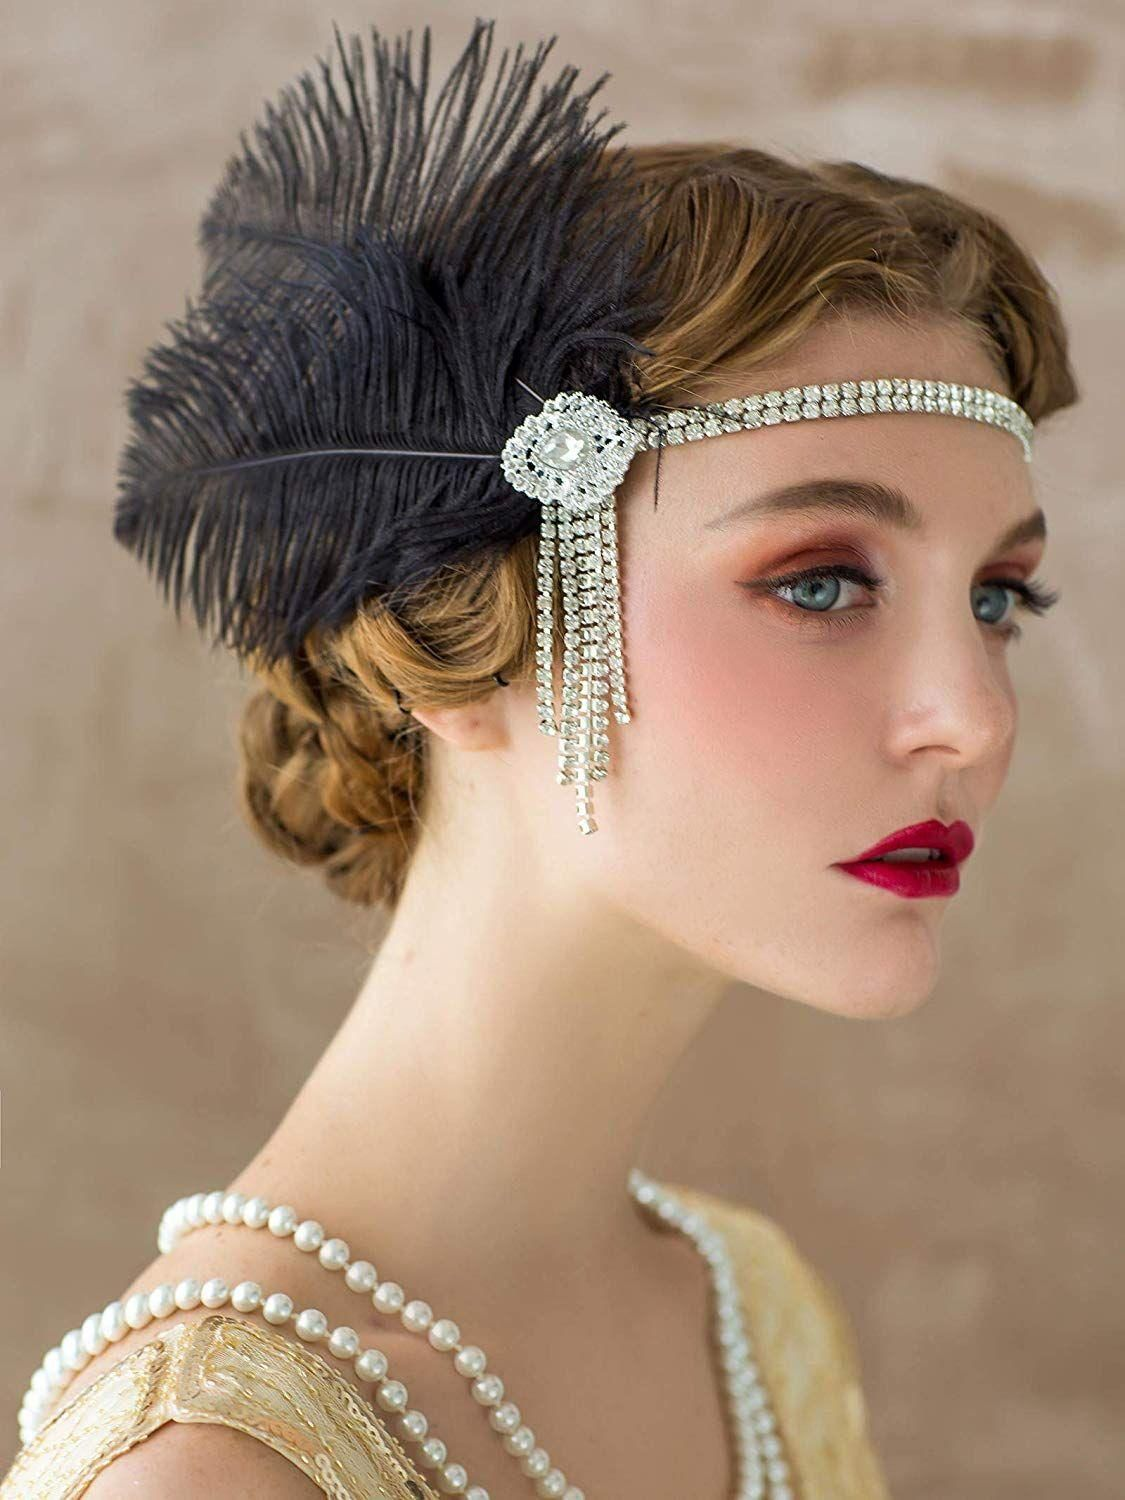 1920s Headband Headpiece Hair Accessory Styles In 2020 1920s Headband Gatsby Hair Hair Accessories